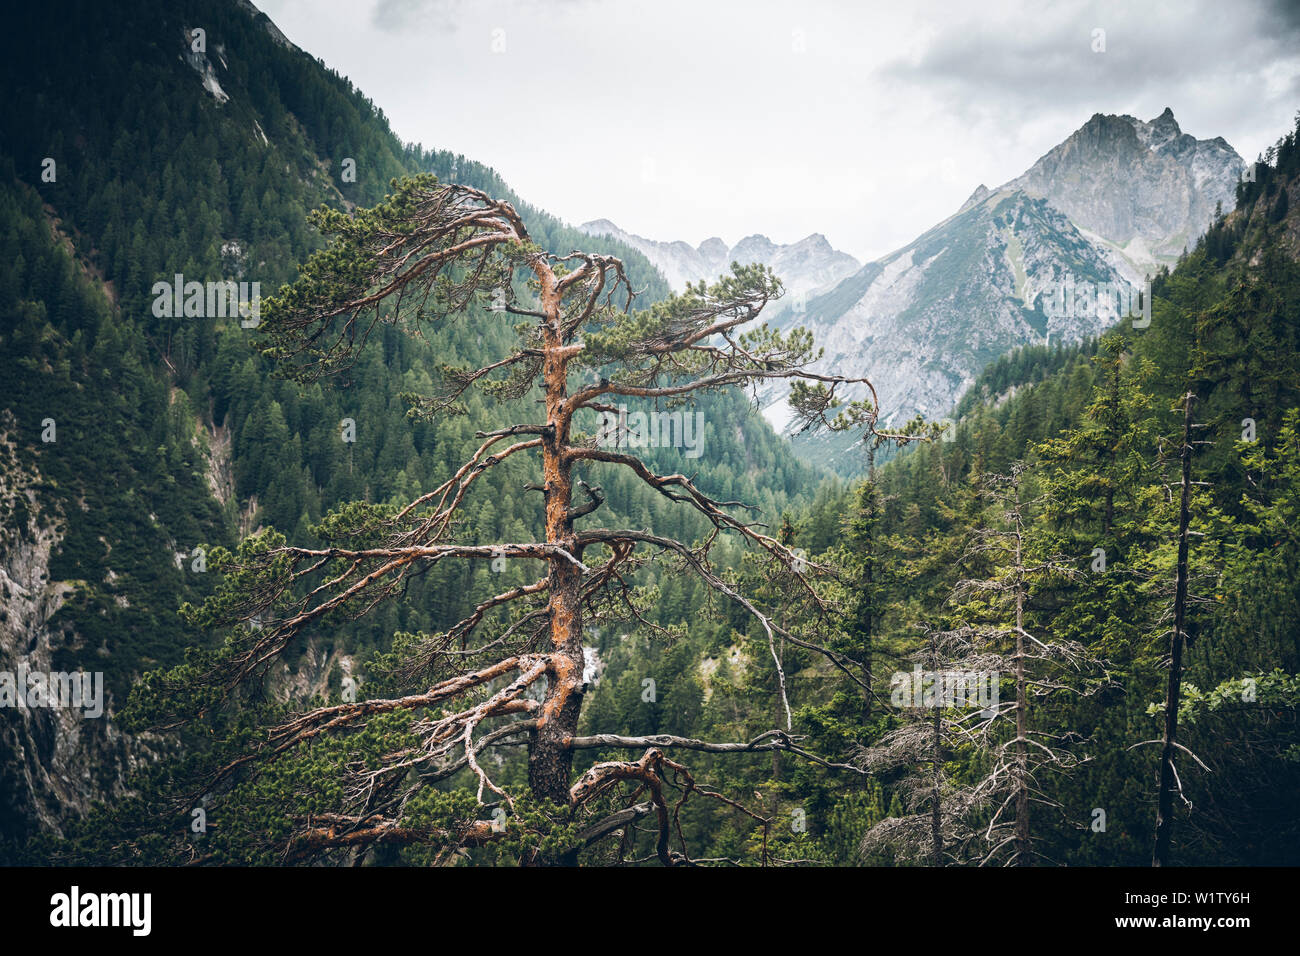 Tree tops with mountain peak in the background, E5, Alpenüberquerung, 3rd stage, Seescharte,Inntal, Memminger Hütte to Unterloch Alm, tyrol, austria, Stock Photo